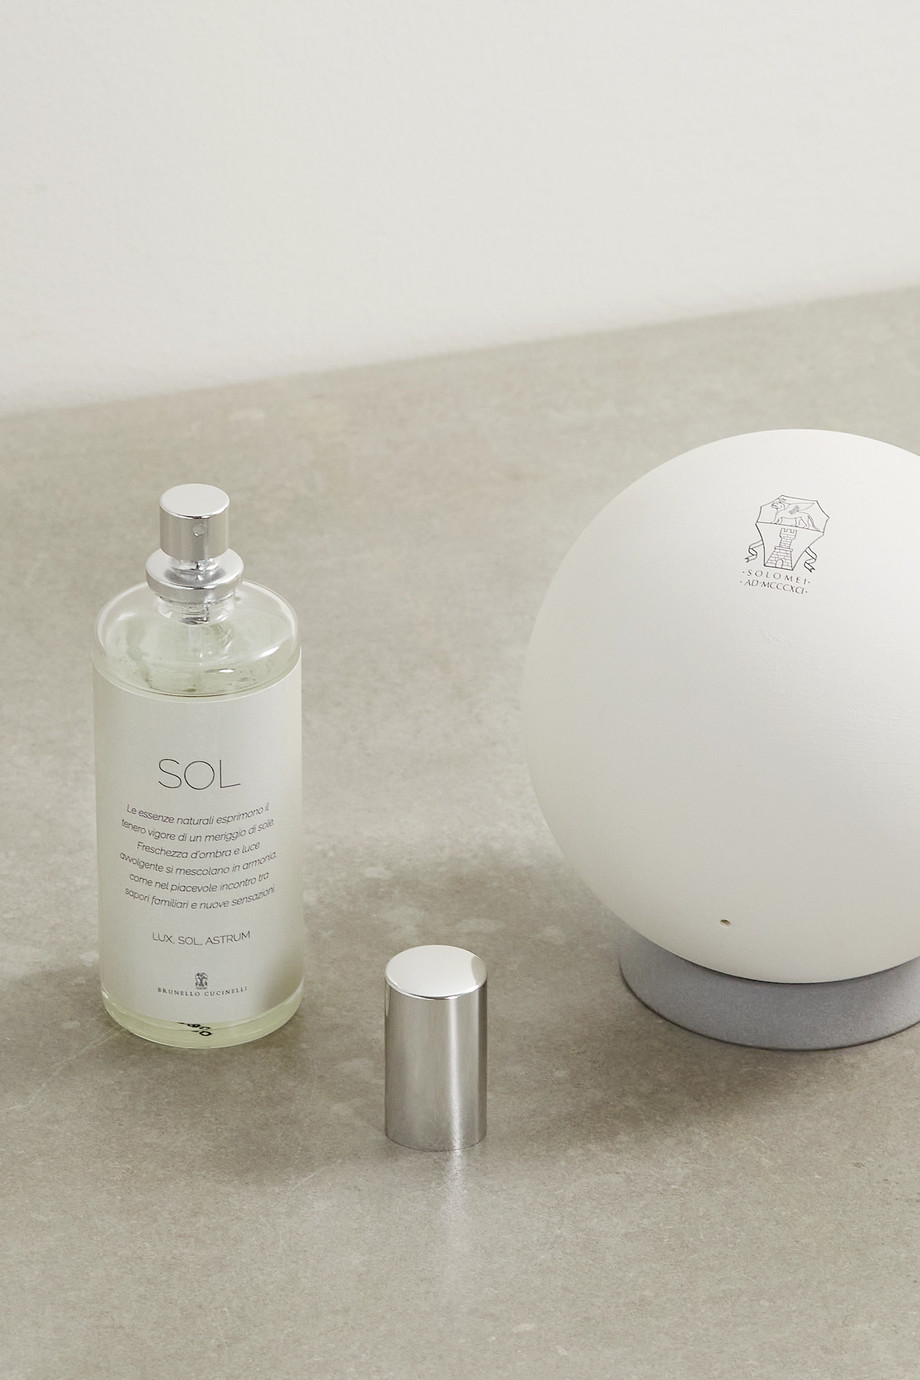 BRUNELLO CUCINELLI Sol Sphere diffuser and refill set